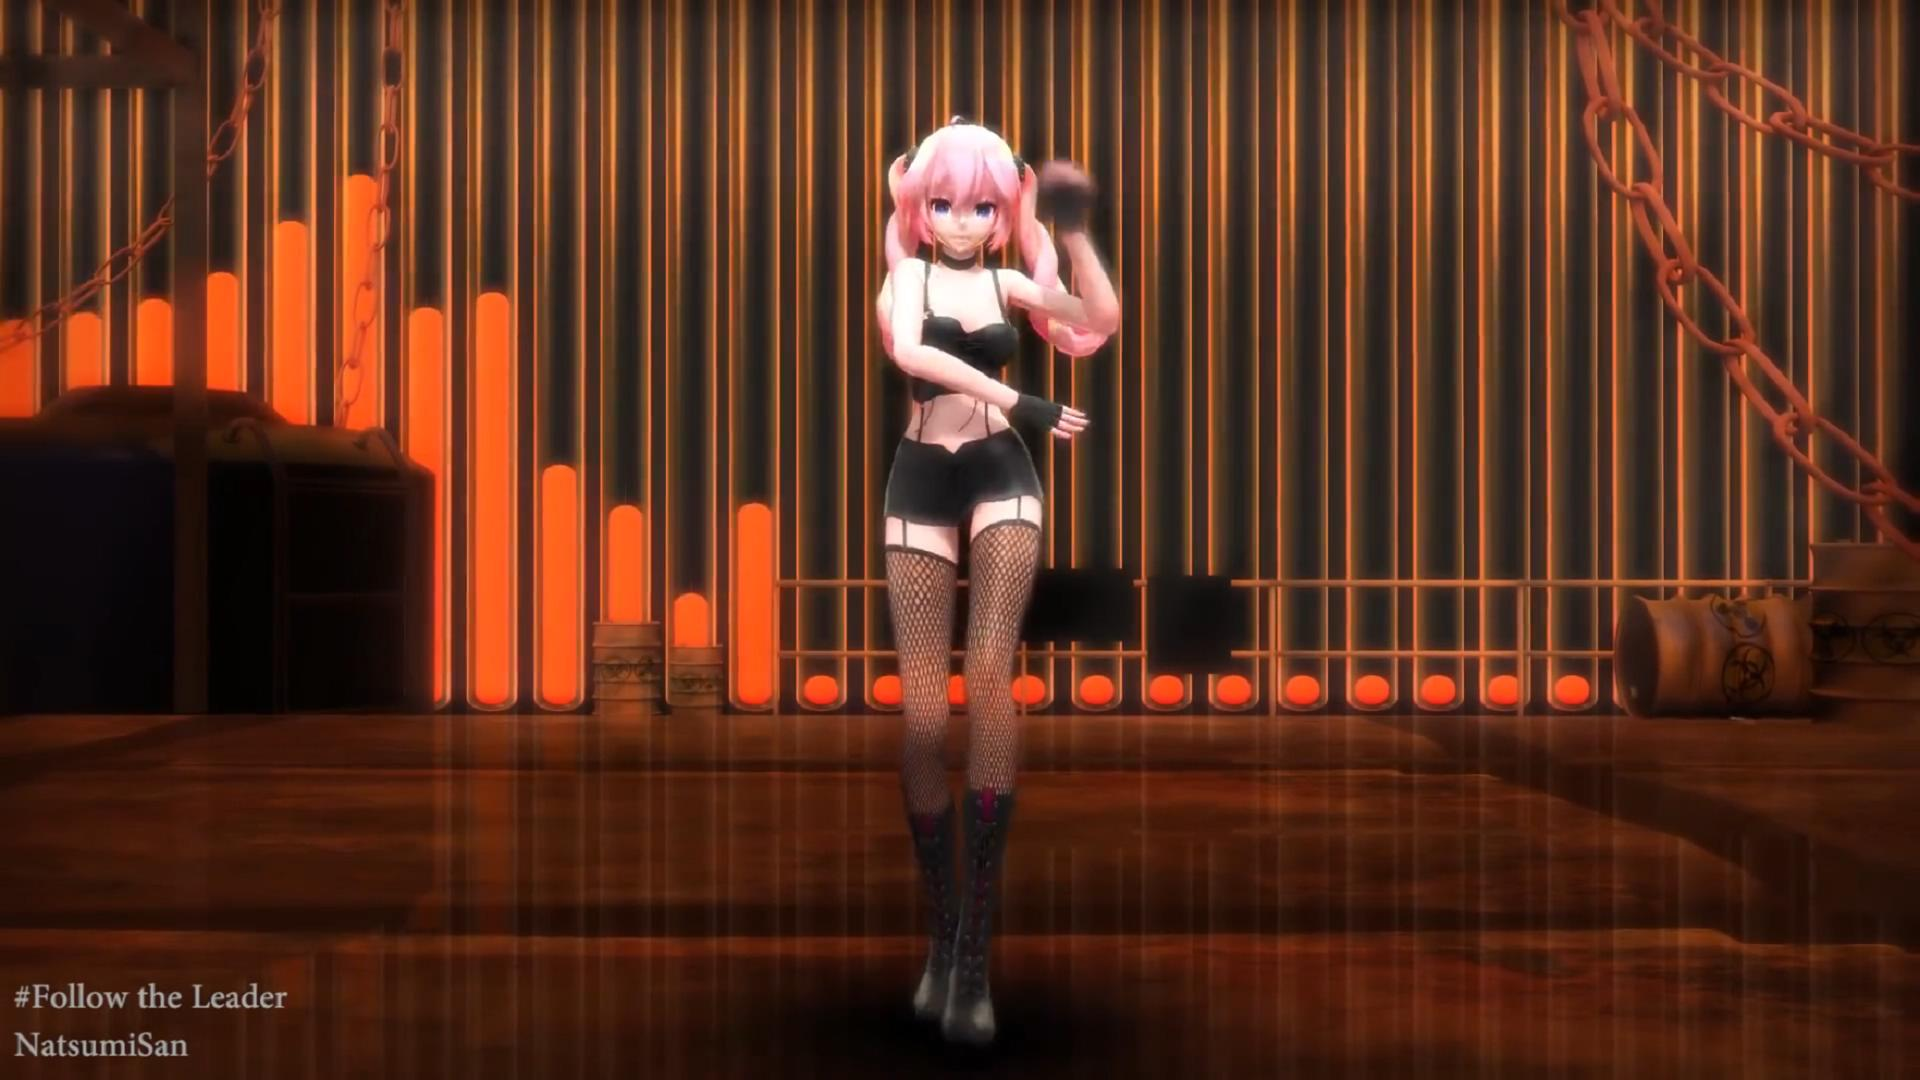 [MMD] Follow the Leader [Motion Download]_20170116174239.JPG